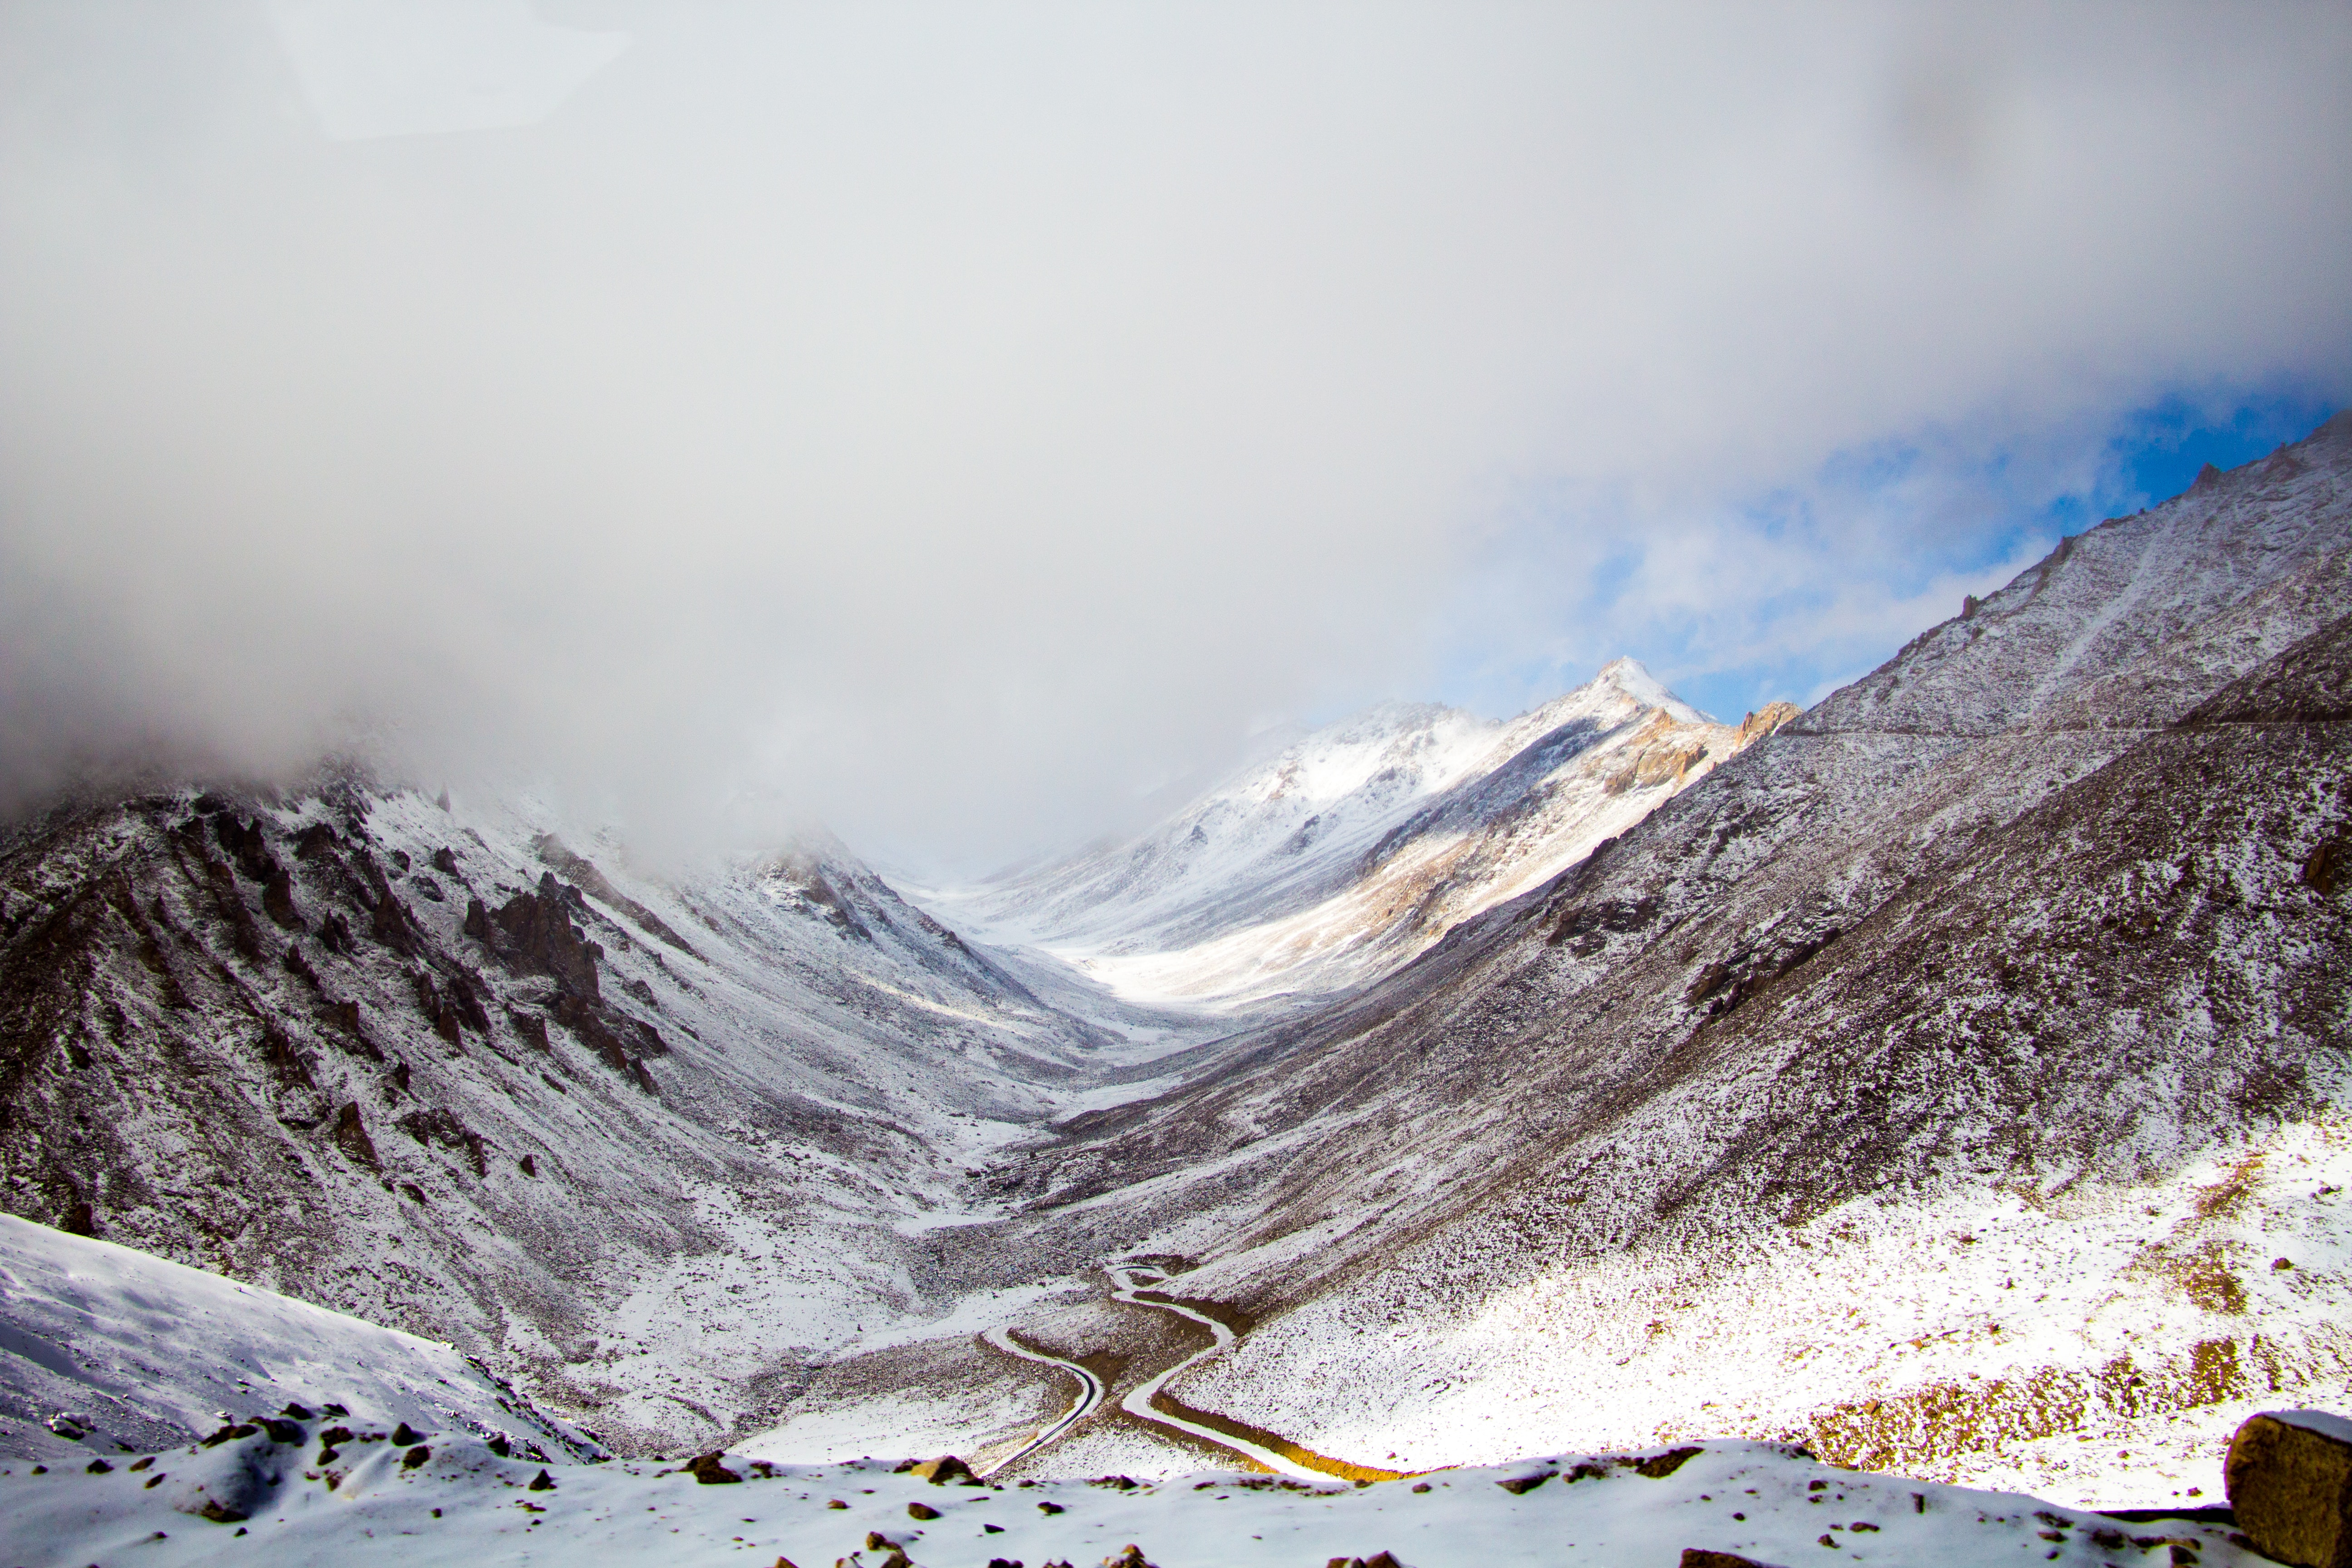 Scenic Photography of Snowy Mountains, Clouds, Snow capped, Over the clouds, Scenery, HQ Photo